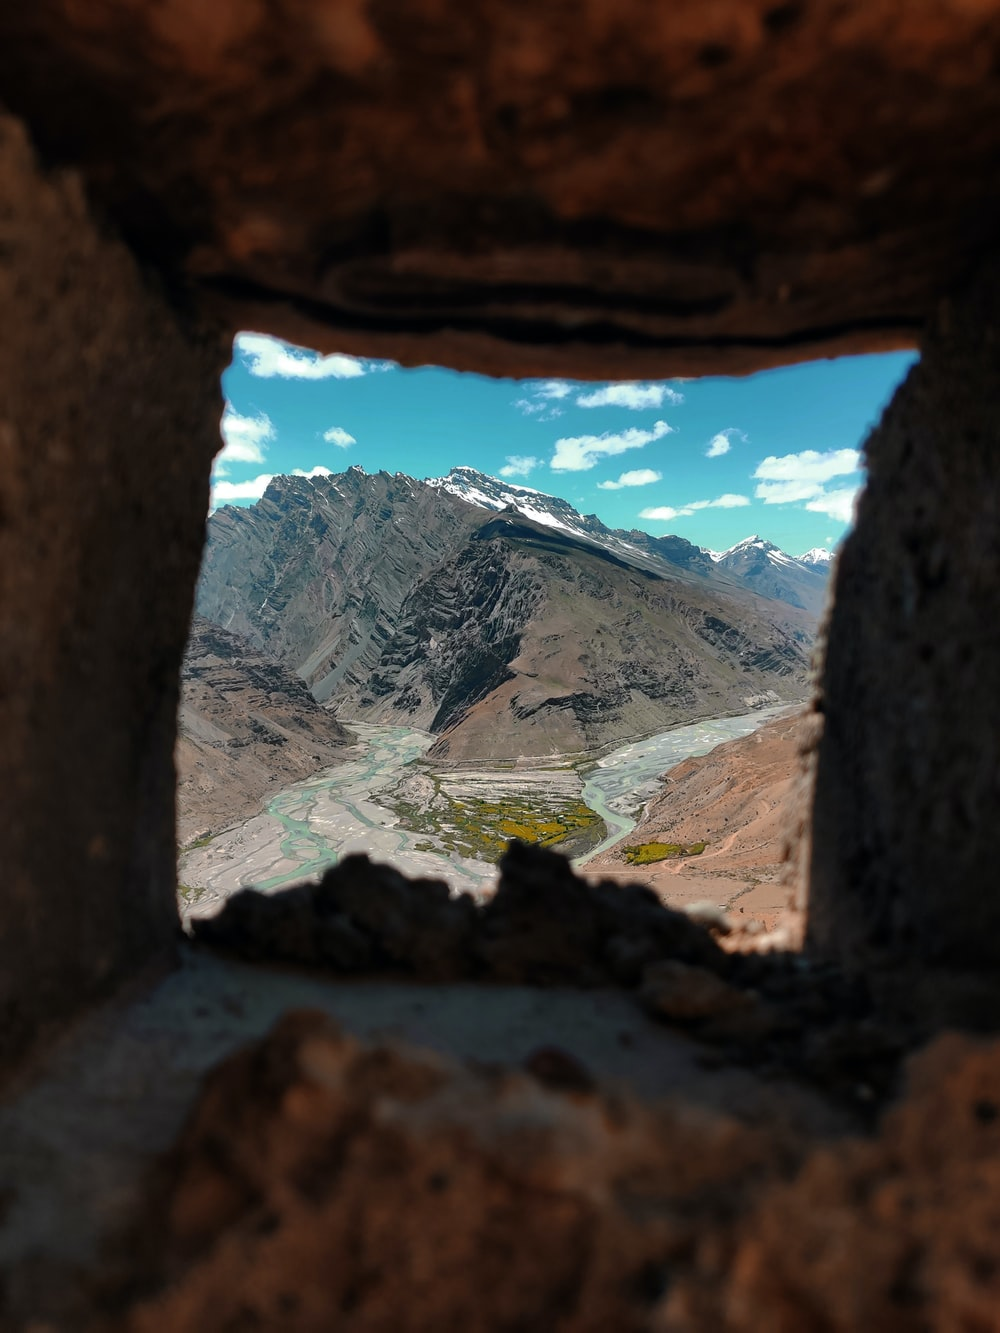 mountains and body of water through ssquare hole